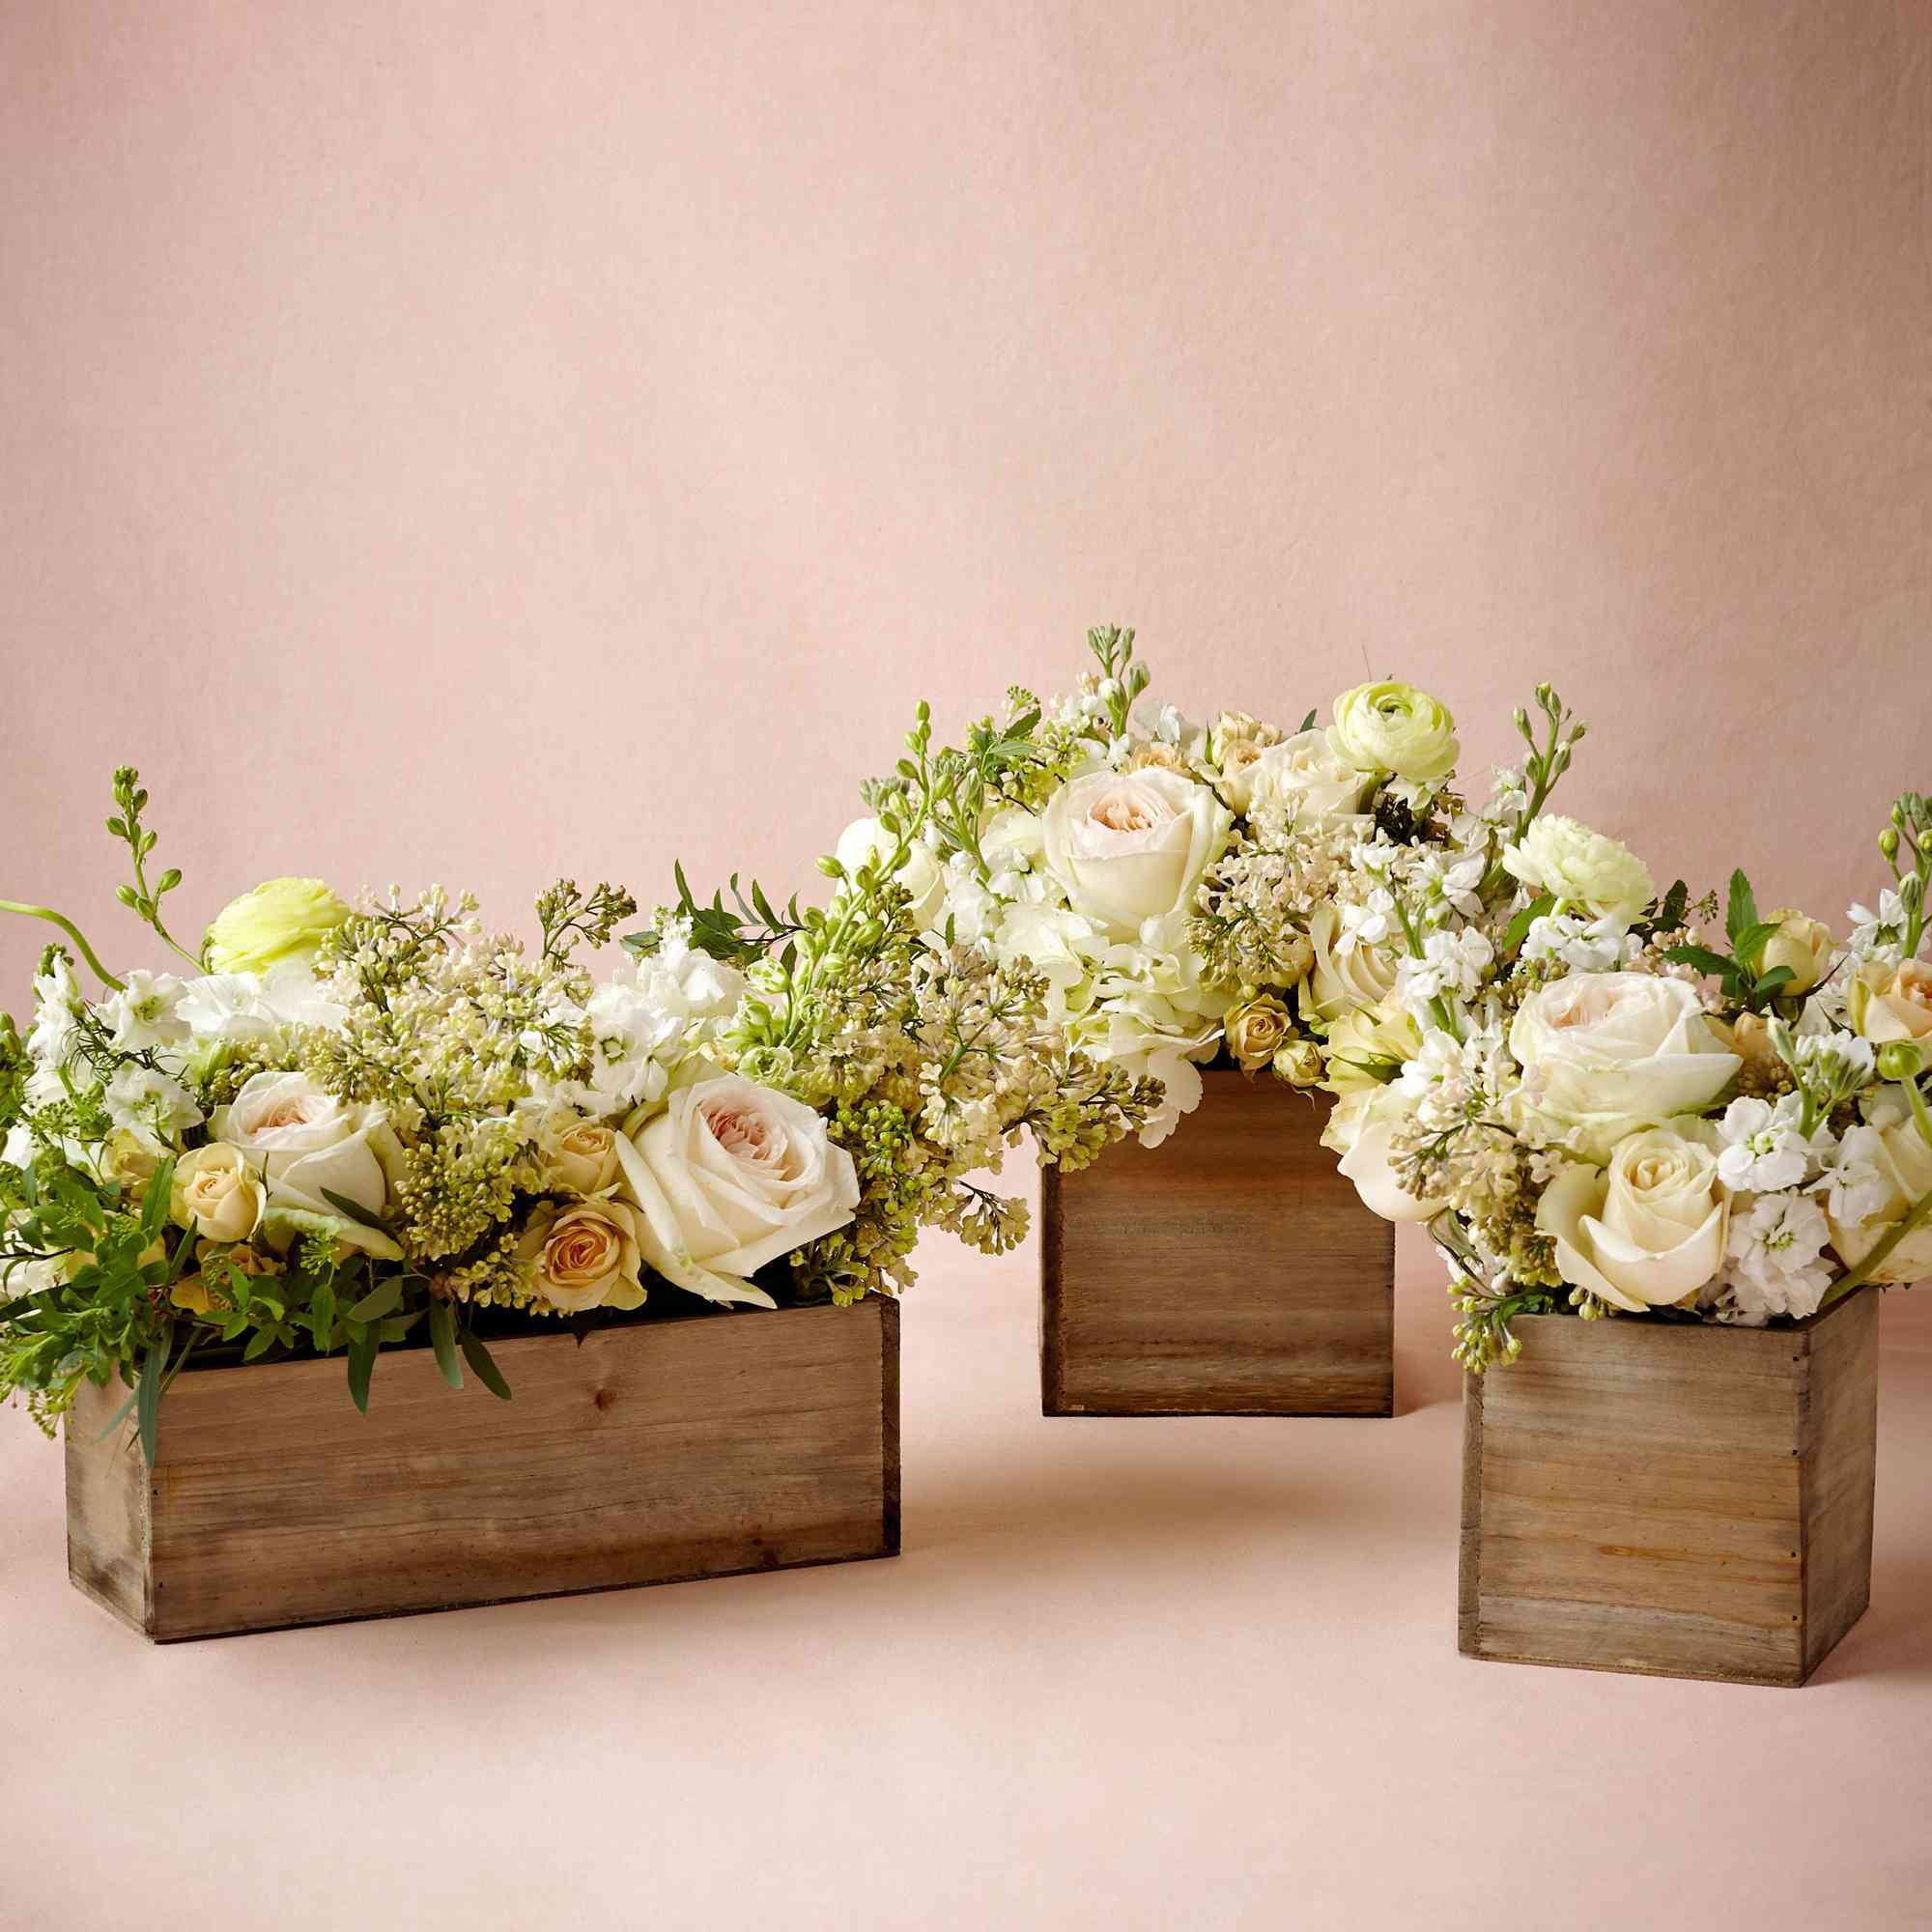 12 Rustic Wedding Decorations That You Haven T Seen A Million Times